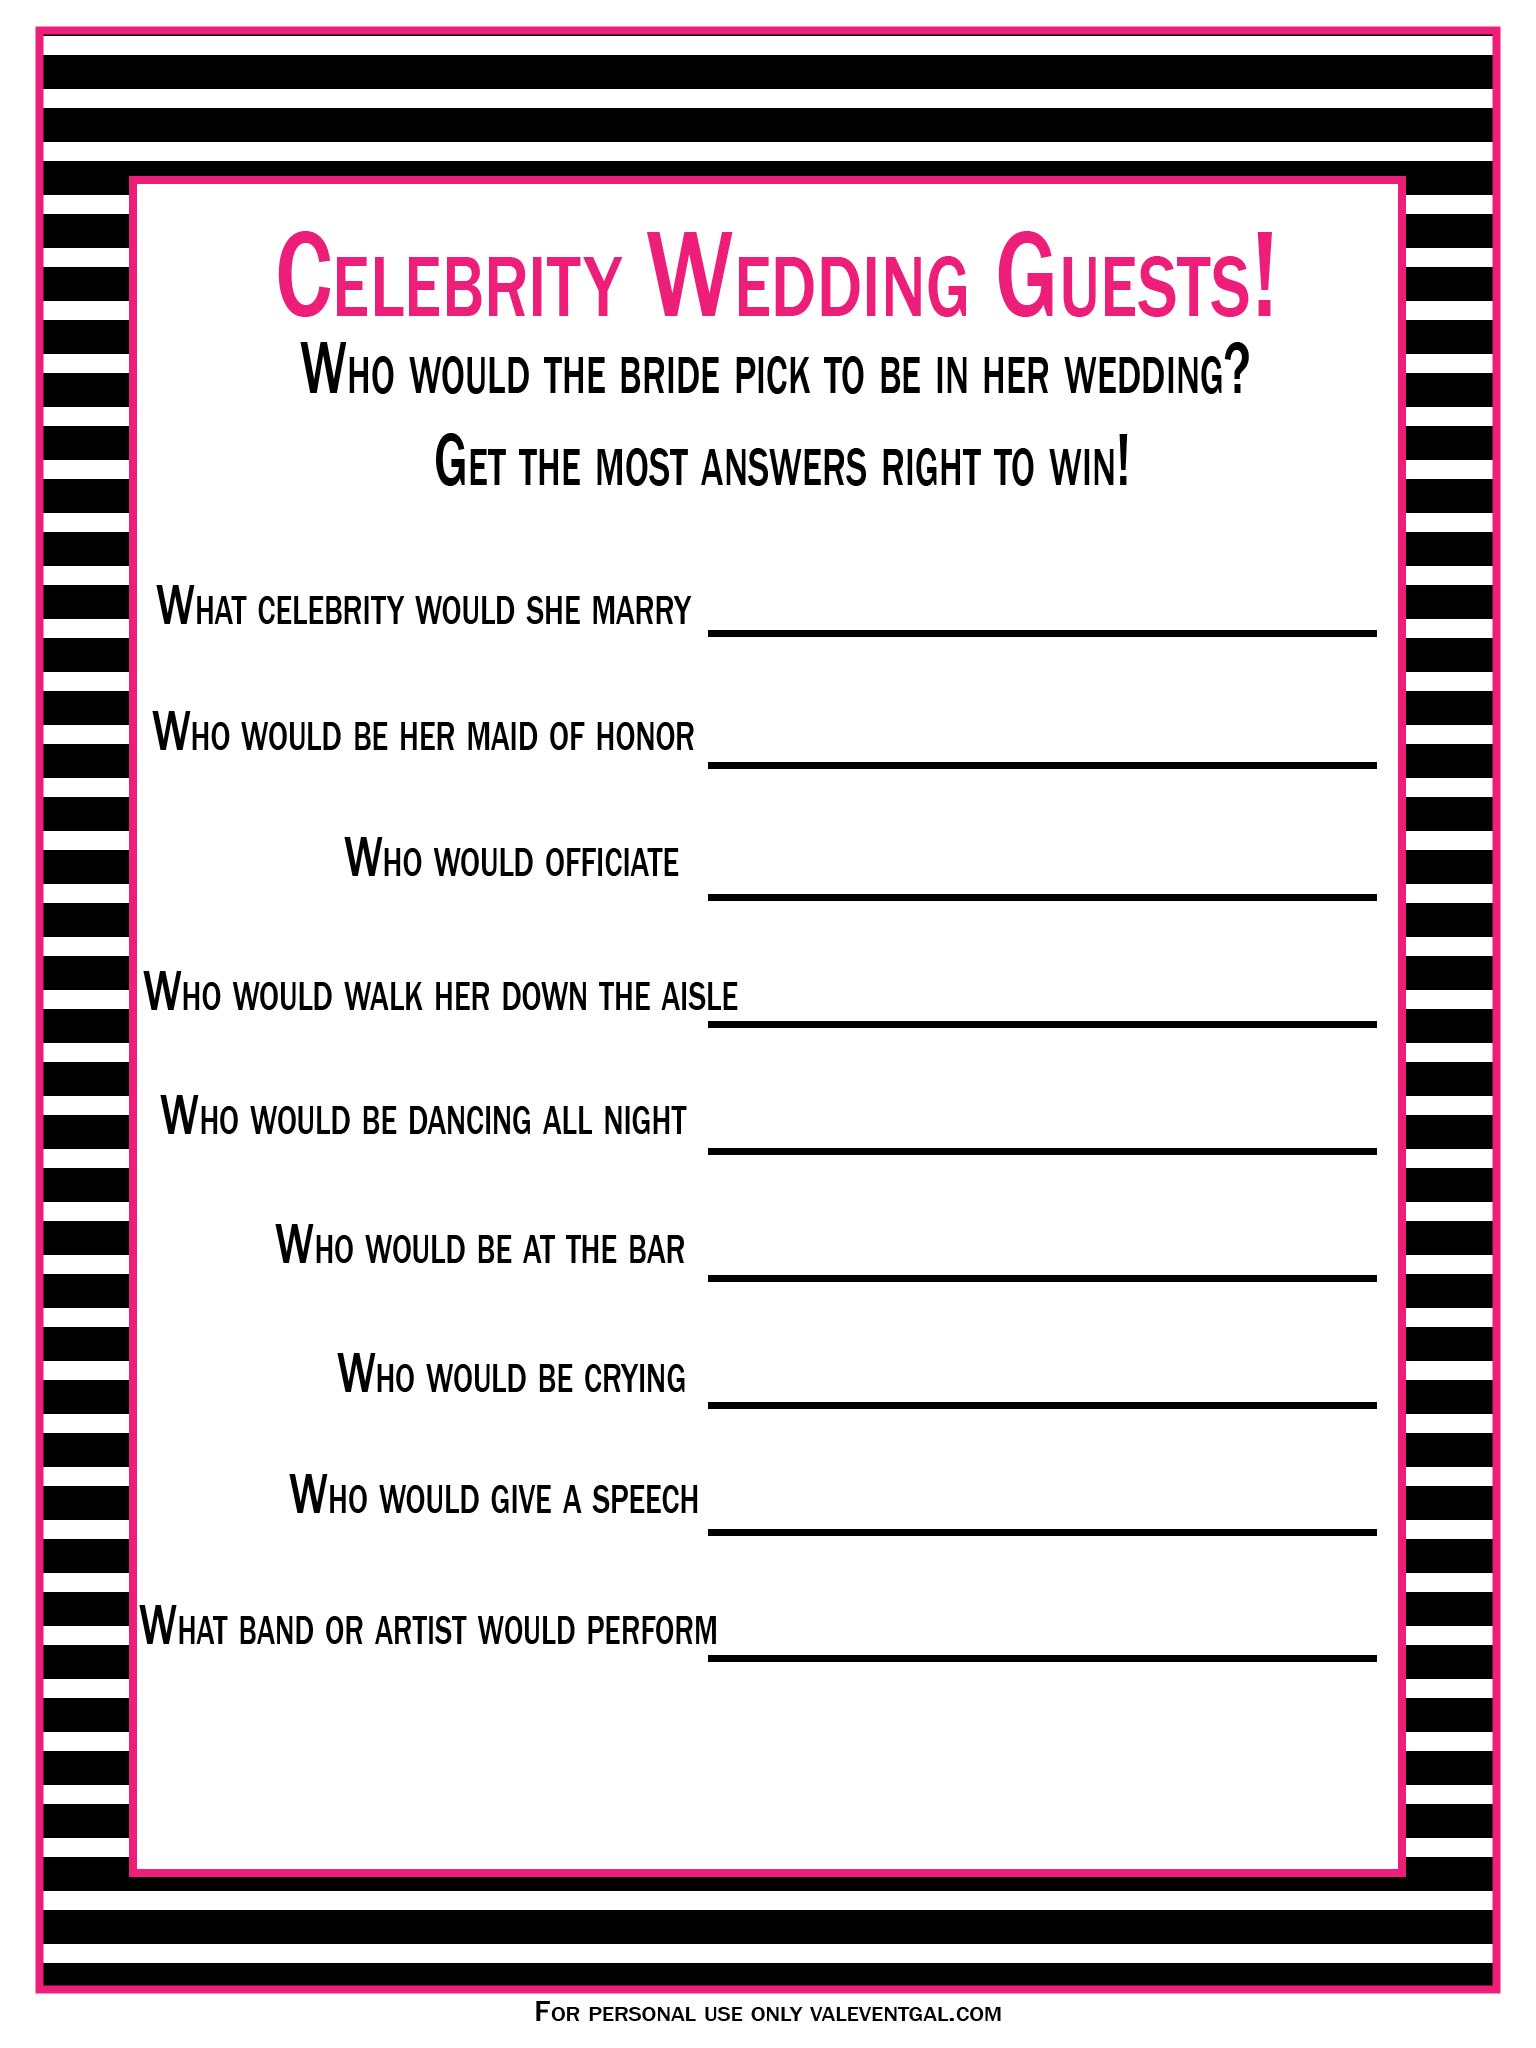 Celebrity wedding guests game!-01